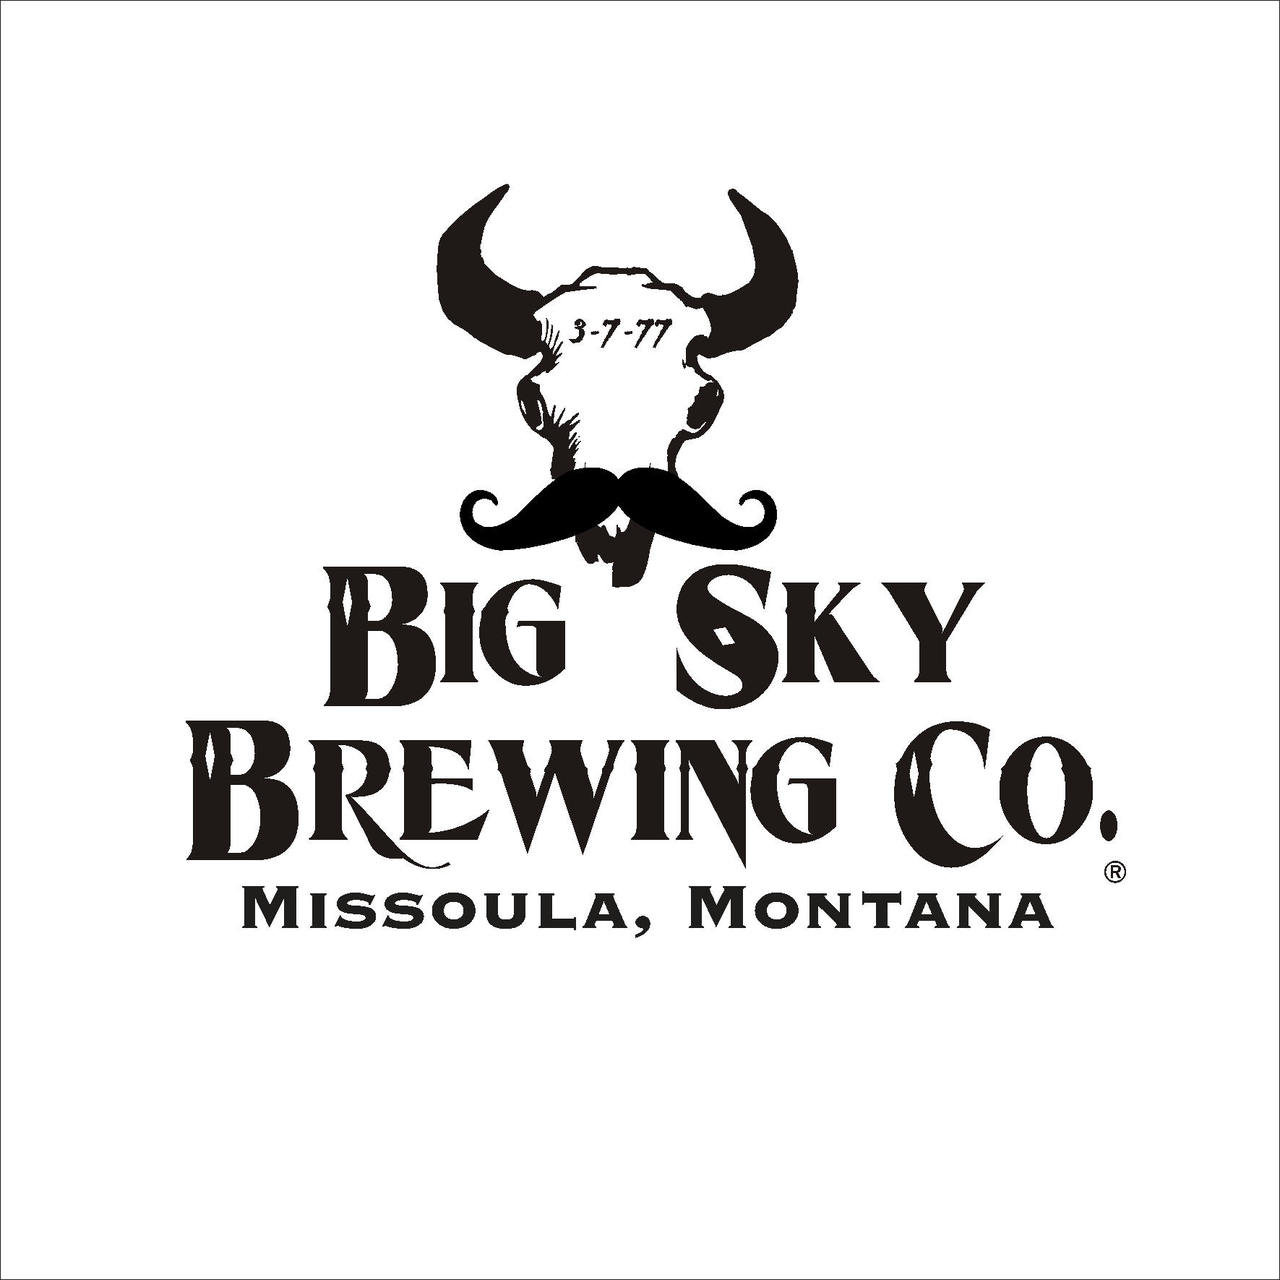 bigskybrewing :      It's Moustache Growing Season In Montana    Big Sky Brewing Company has, once again, fielded a team to raise money and awareness for CANCER. Last year's battle cry still rings true:      A league of determined gentleman, united by their shared hatred of CANCER, sworn to fight it, wherever it may hide, using all the hairy power of their upper lips throughout the month of Movember.      Last year's team eclipsed the $5,000 mark and we aim to improve on this precedent. You can support this cause and donate to our team  HERE.